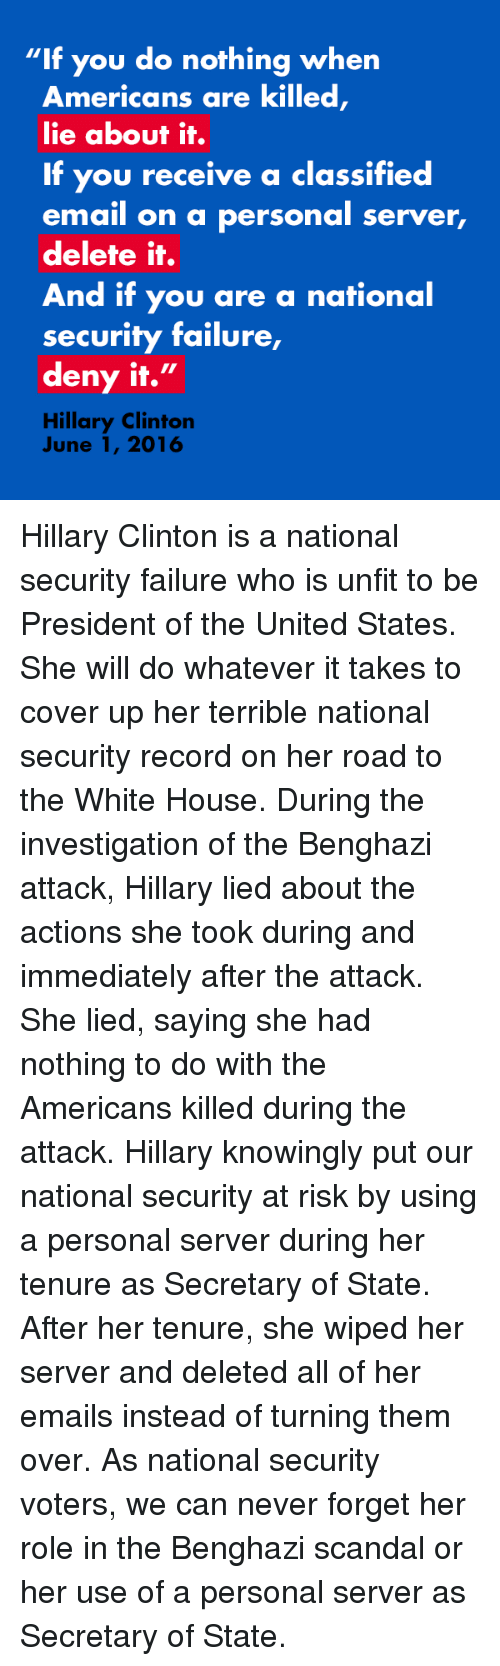 """Hillary Clinton, Ups, and White House: """"If you do nothing when  Americans are killed  lie about it.  If you receive a classified  email on a personal server,  delete it.  And if you are a national  security failure,  deny it.  II  Hillary Clinton  June 1, 2016 Hillary Clinton is a national security failure who is unfit to be President of the United States. She will do whatever it takes to cover up her terrible national security record on her road to the White House. During the investigation of the Benghazi attack, Hillary lied about the actions she took during and immediately after the attack. She lied, saying she had nothing to do with the Americans killed during the attack. Hillary knowingly put our national security at risk by using a personal server during her tenure as Secretary of State. After her tenure, she wiped her server and deleted all of her emails instead of turning them over. As national security voters, we can never forget her role in the Benghazi scandal or her use of a personal server as Secretary of State."""